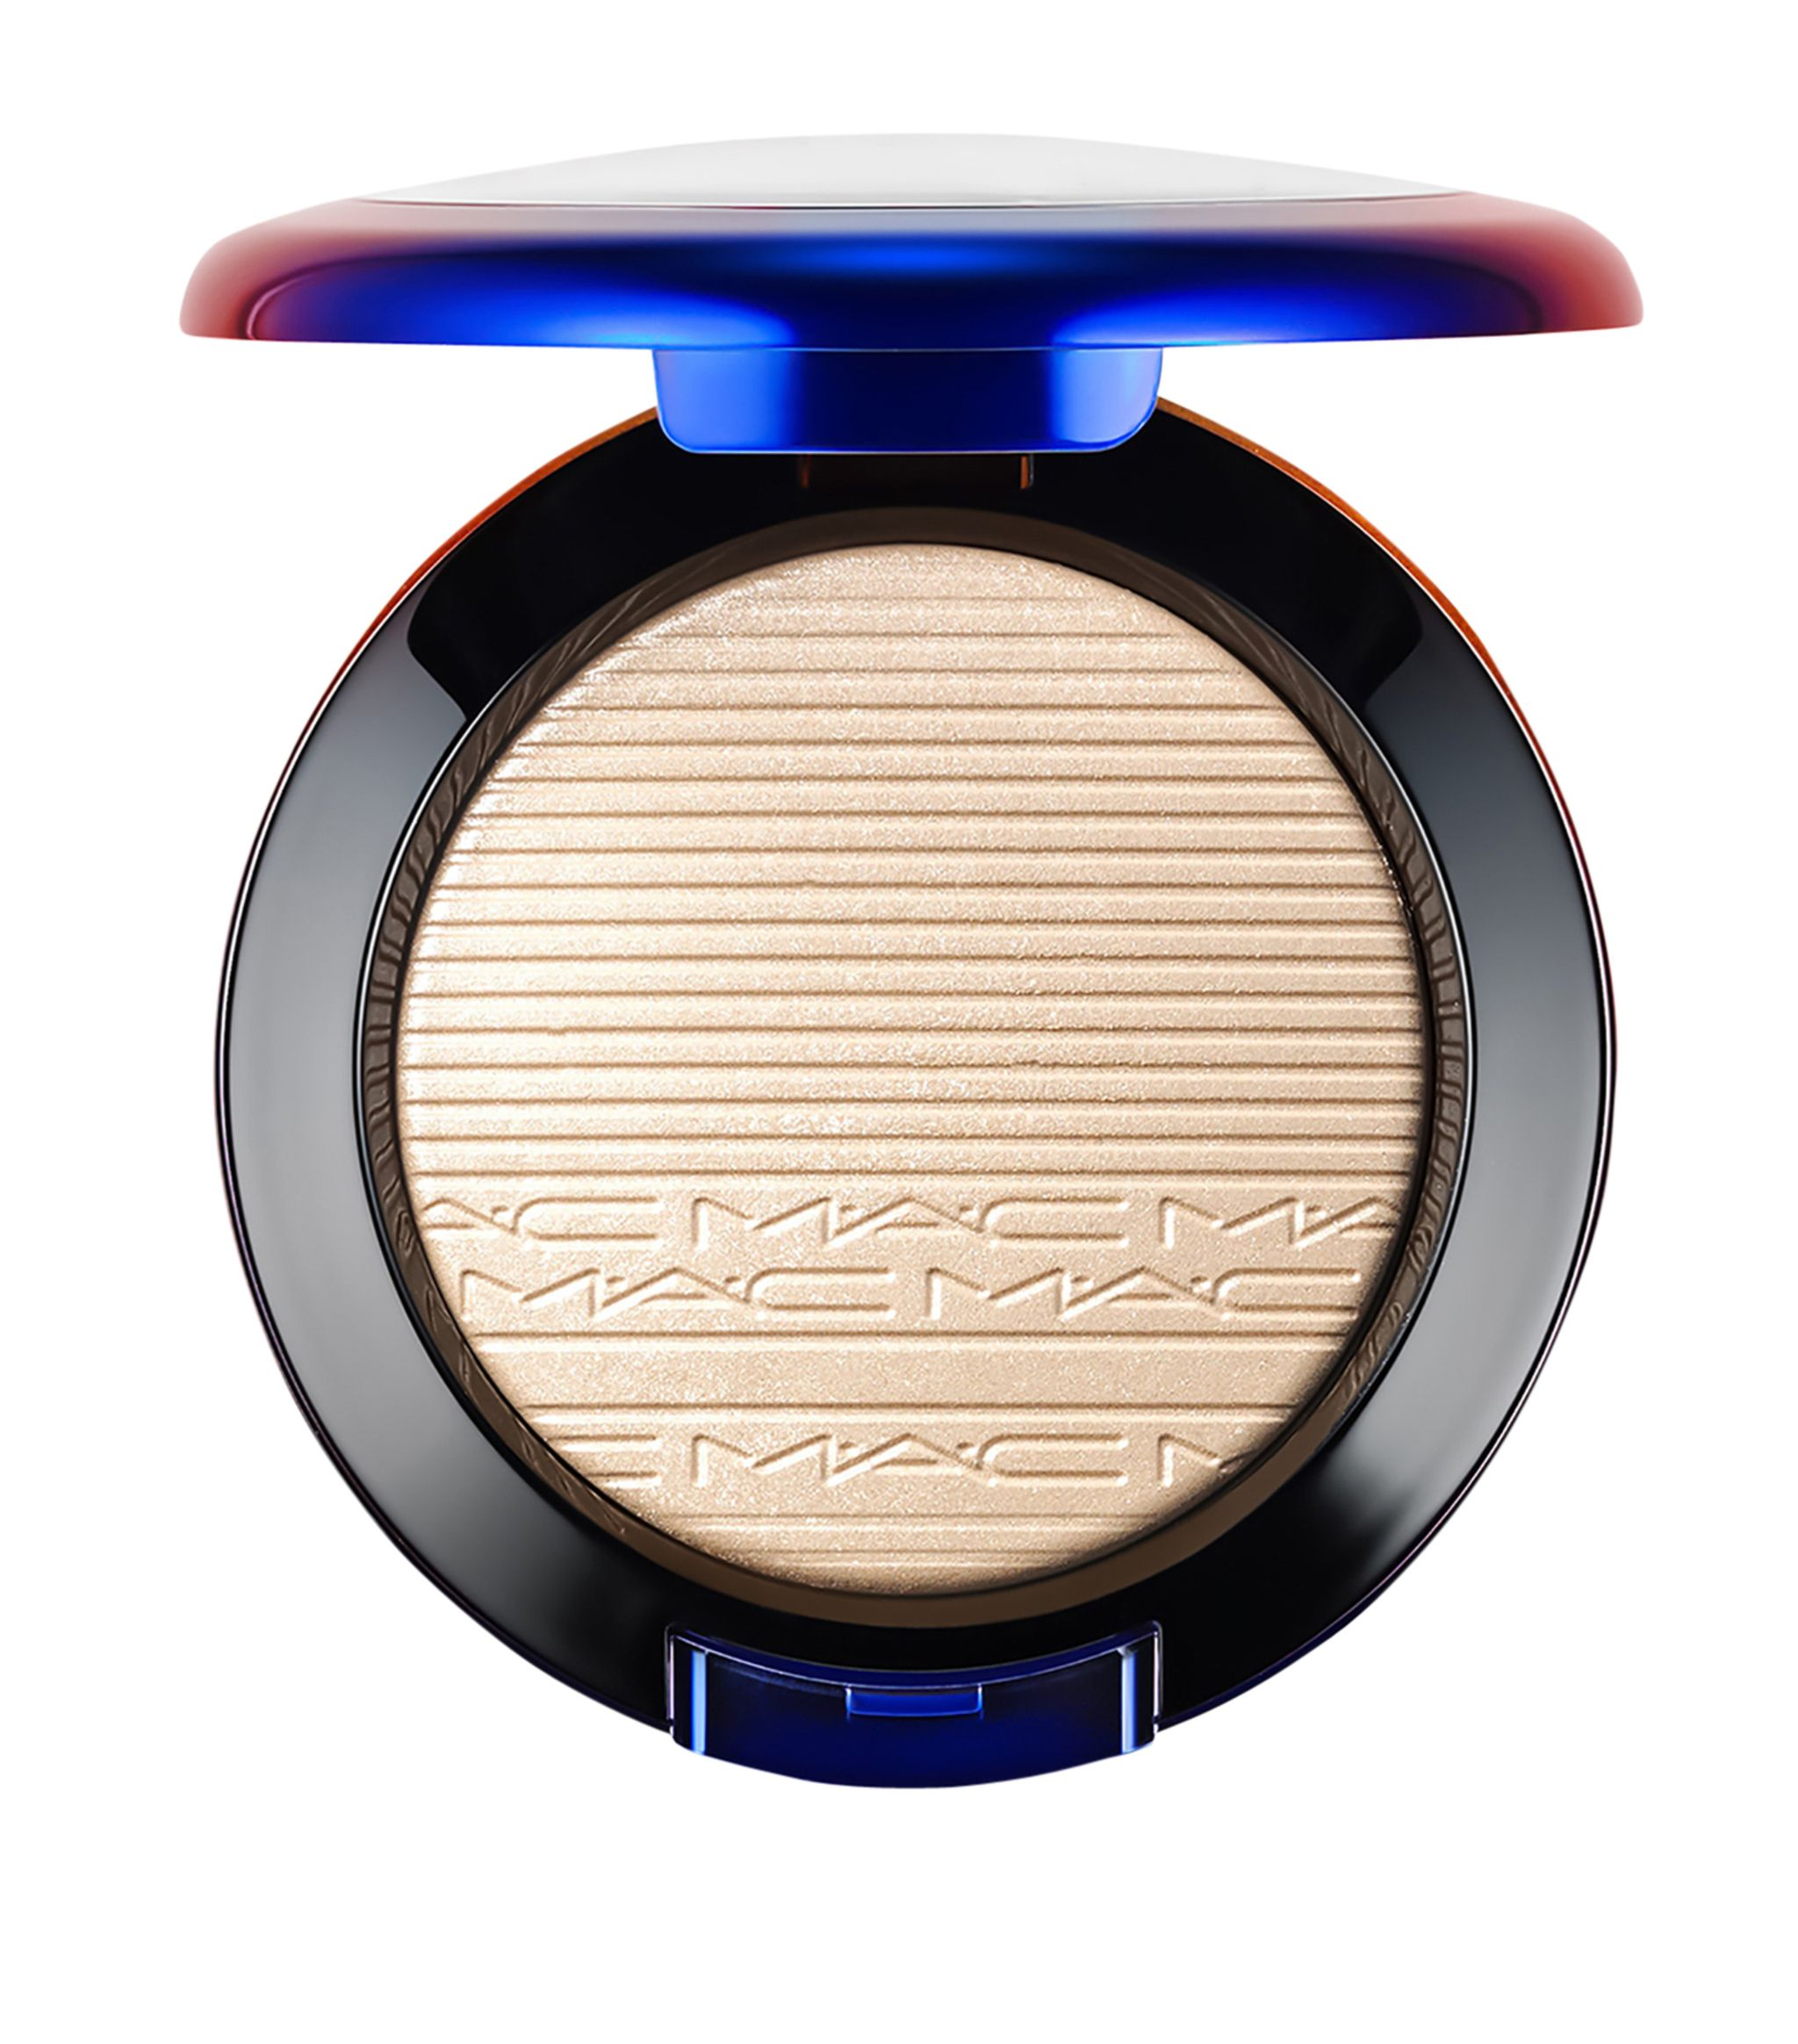 MAC Honor of Kings Extra Dimension Skinfinish